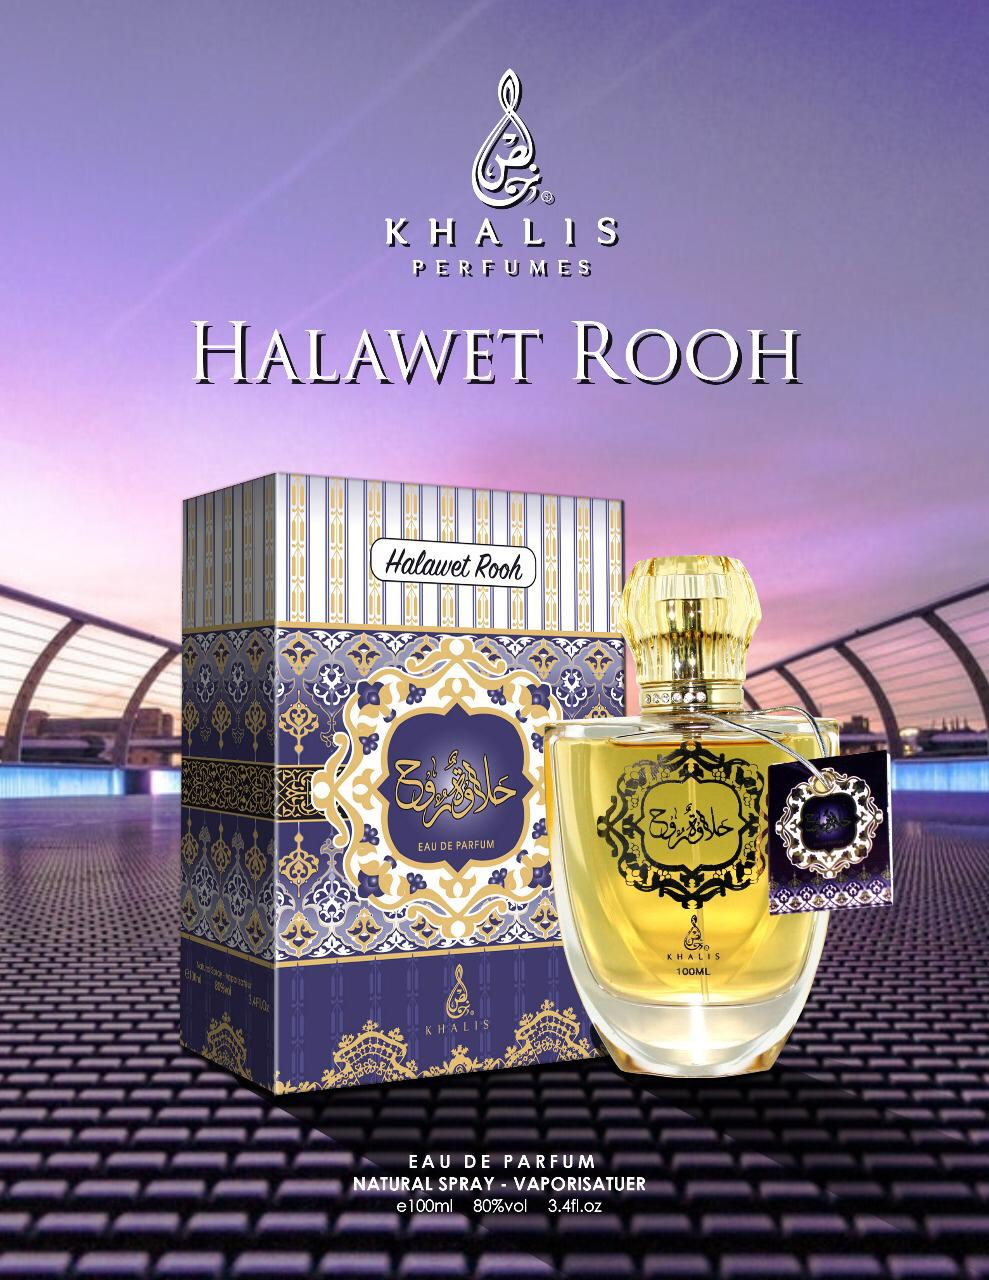 khalis-halawet-rooh-perfume-for-women-100-ml-edp